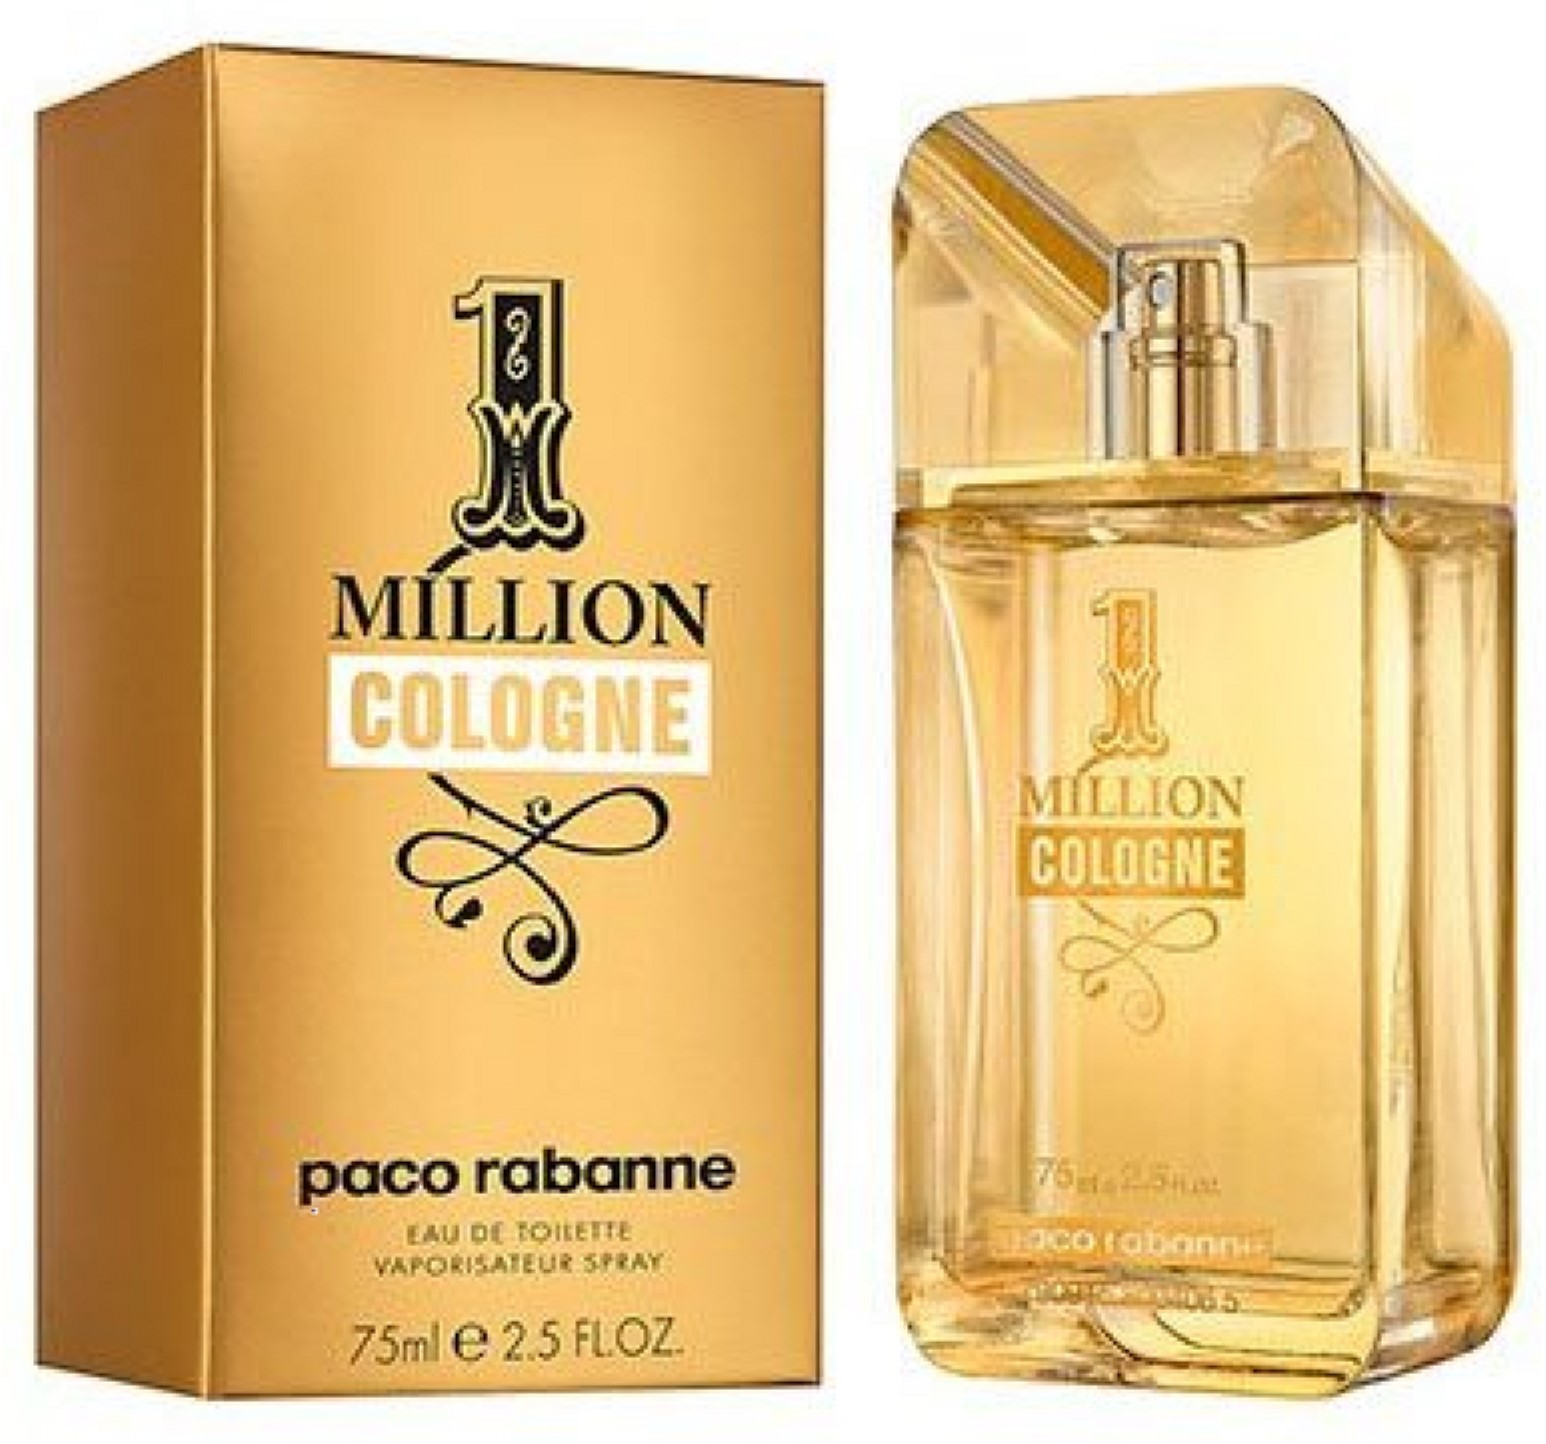 1 Million by Paco Rabanne Cologne Eau de Toilette Spray for Men 2.5 oz